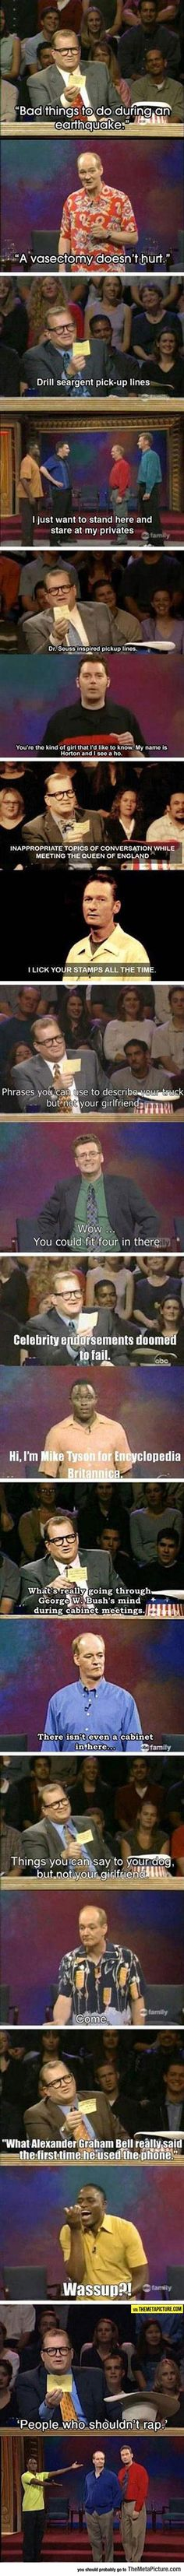 Best Of Whose Line Is It Anyway